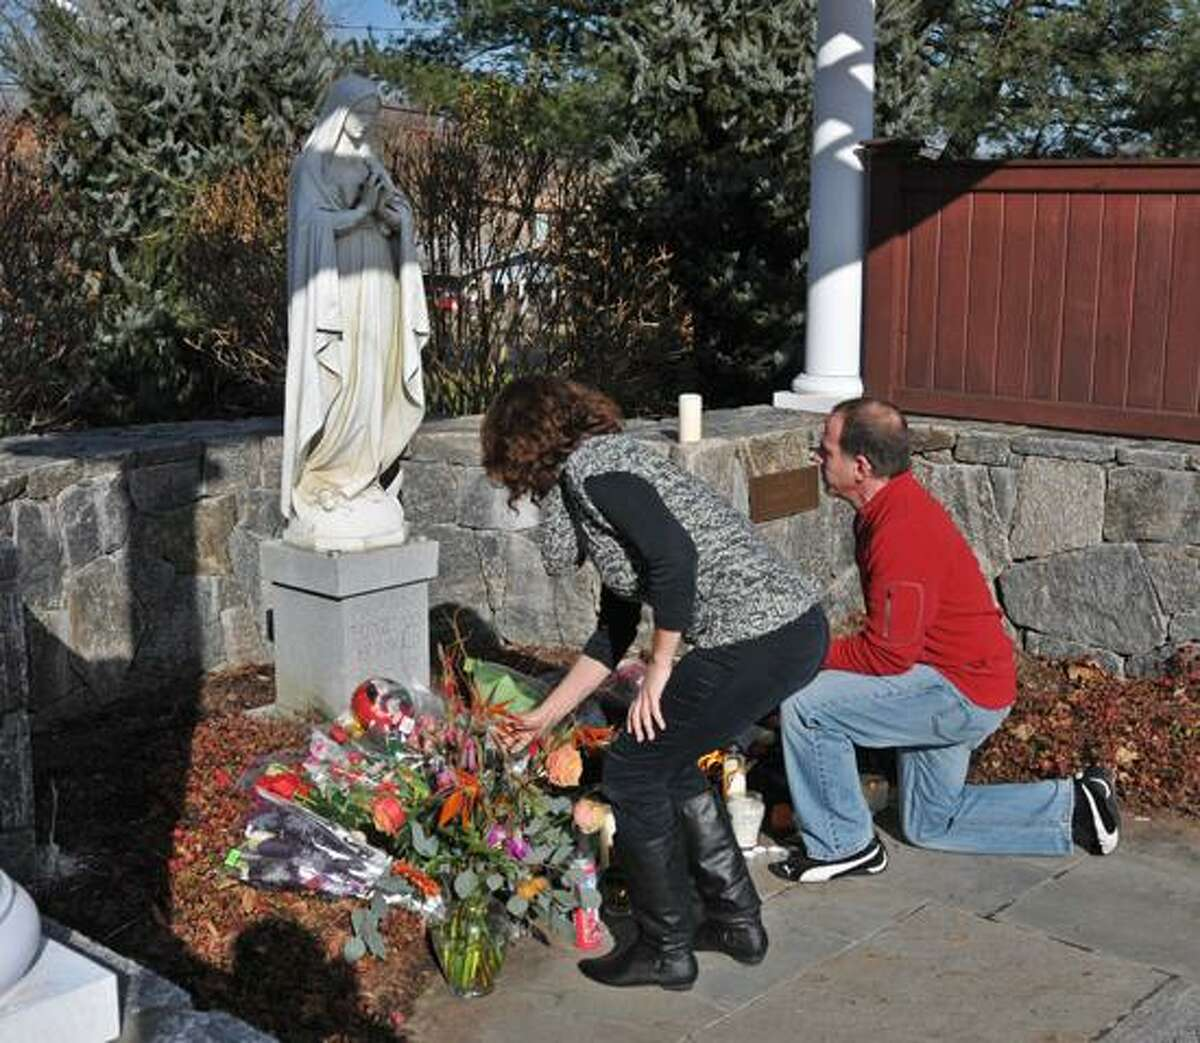 Randy and Paul Convertito of Brookfield place flowers at a statue outside the St. Rose of Lima Church in Newtown. Peter Casolino/New Haven Register